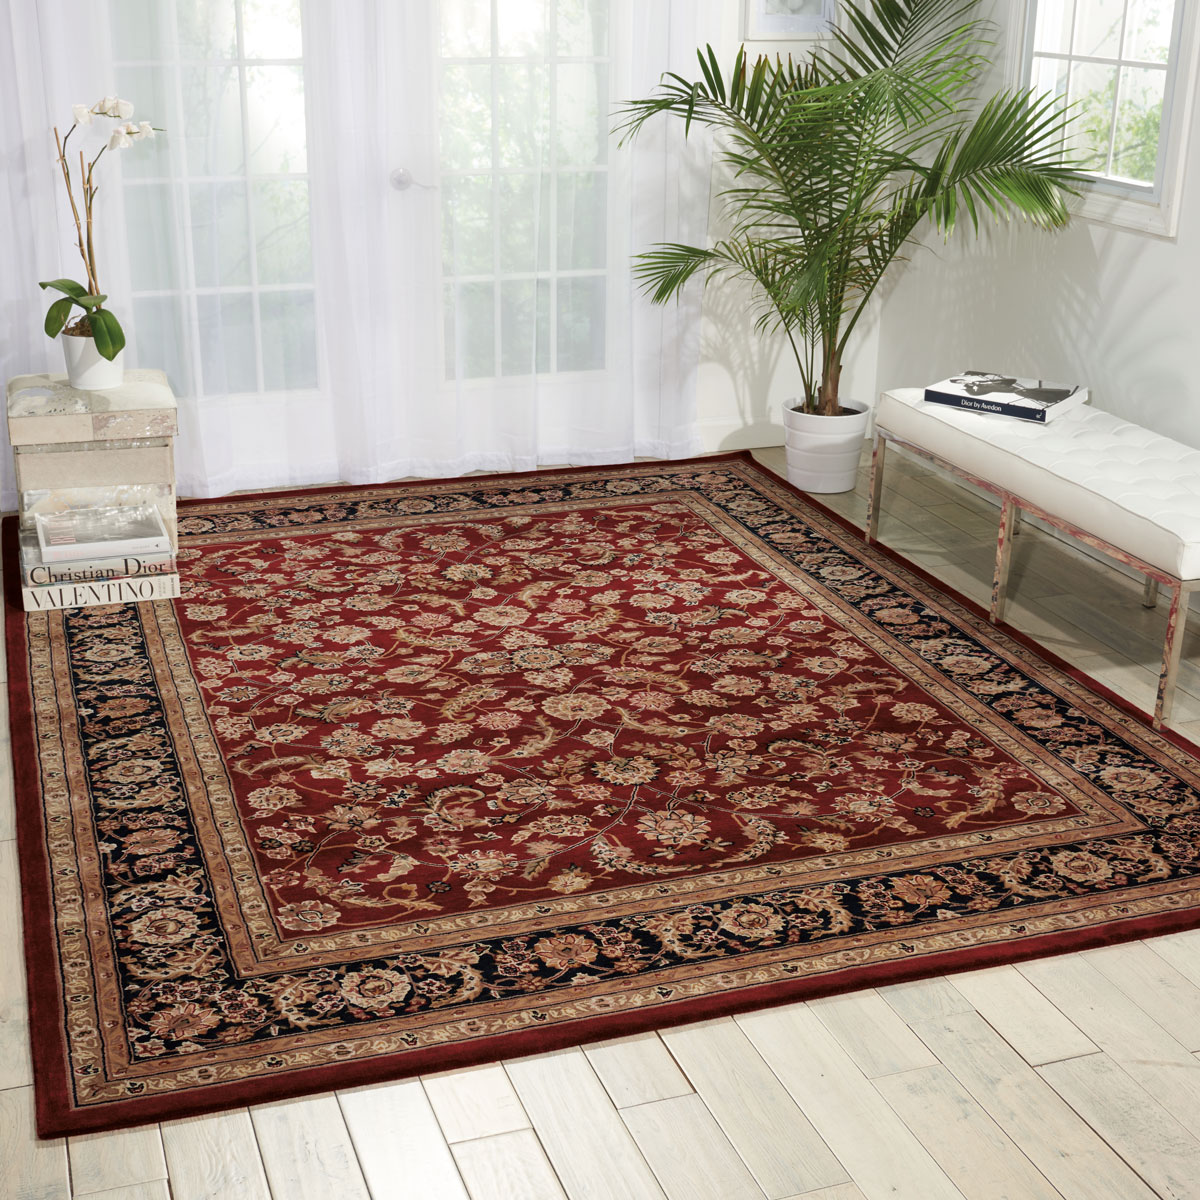 NourCouture Apenzell Hand-Tufted Rug, 9' x 12'